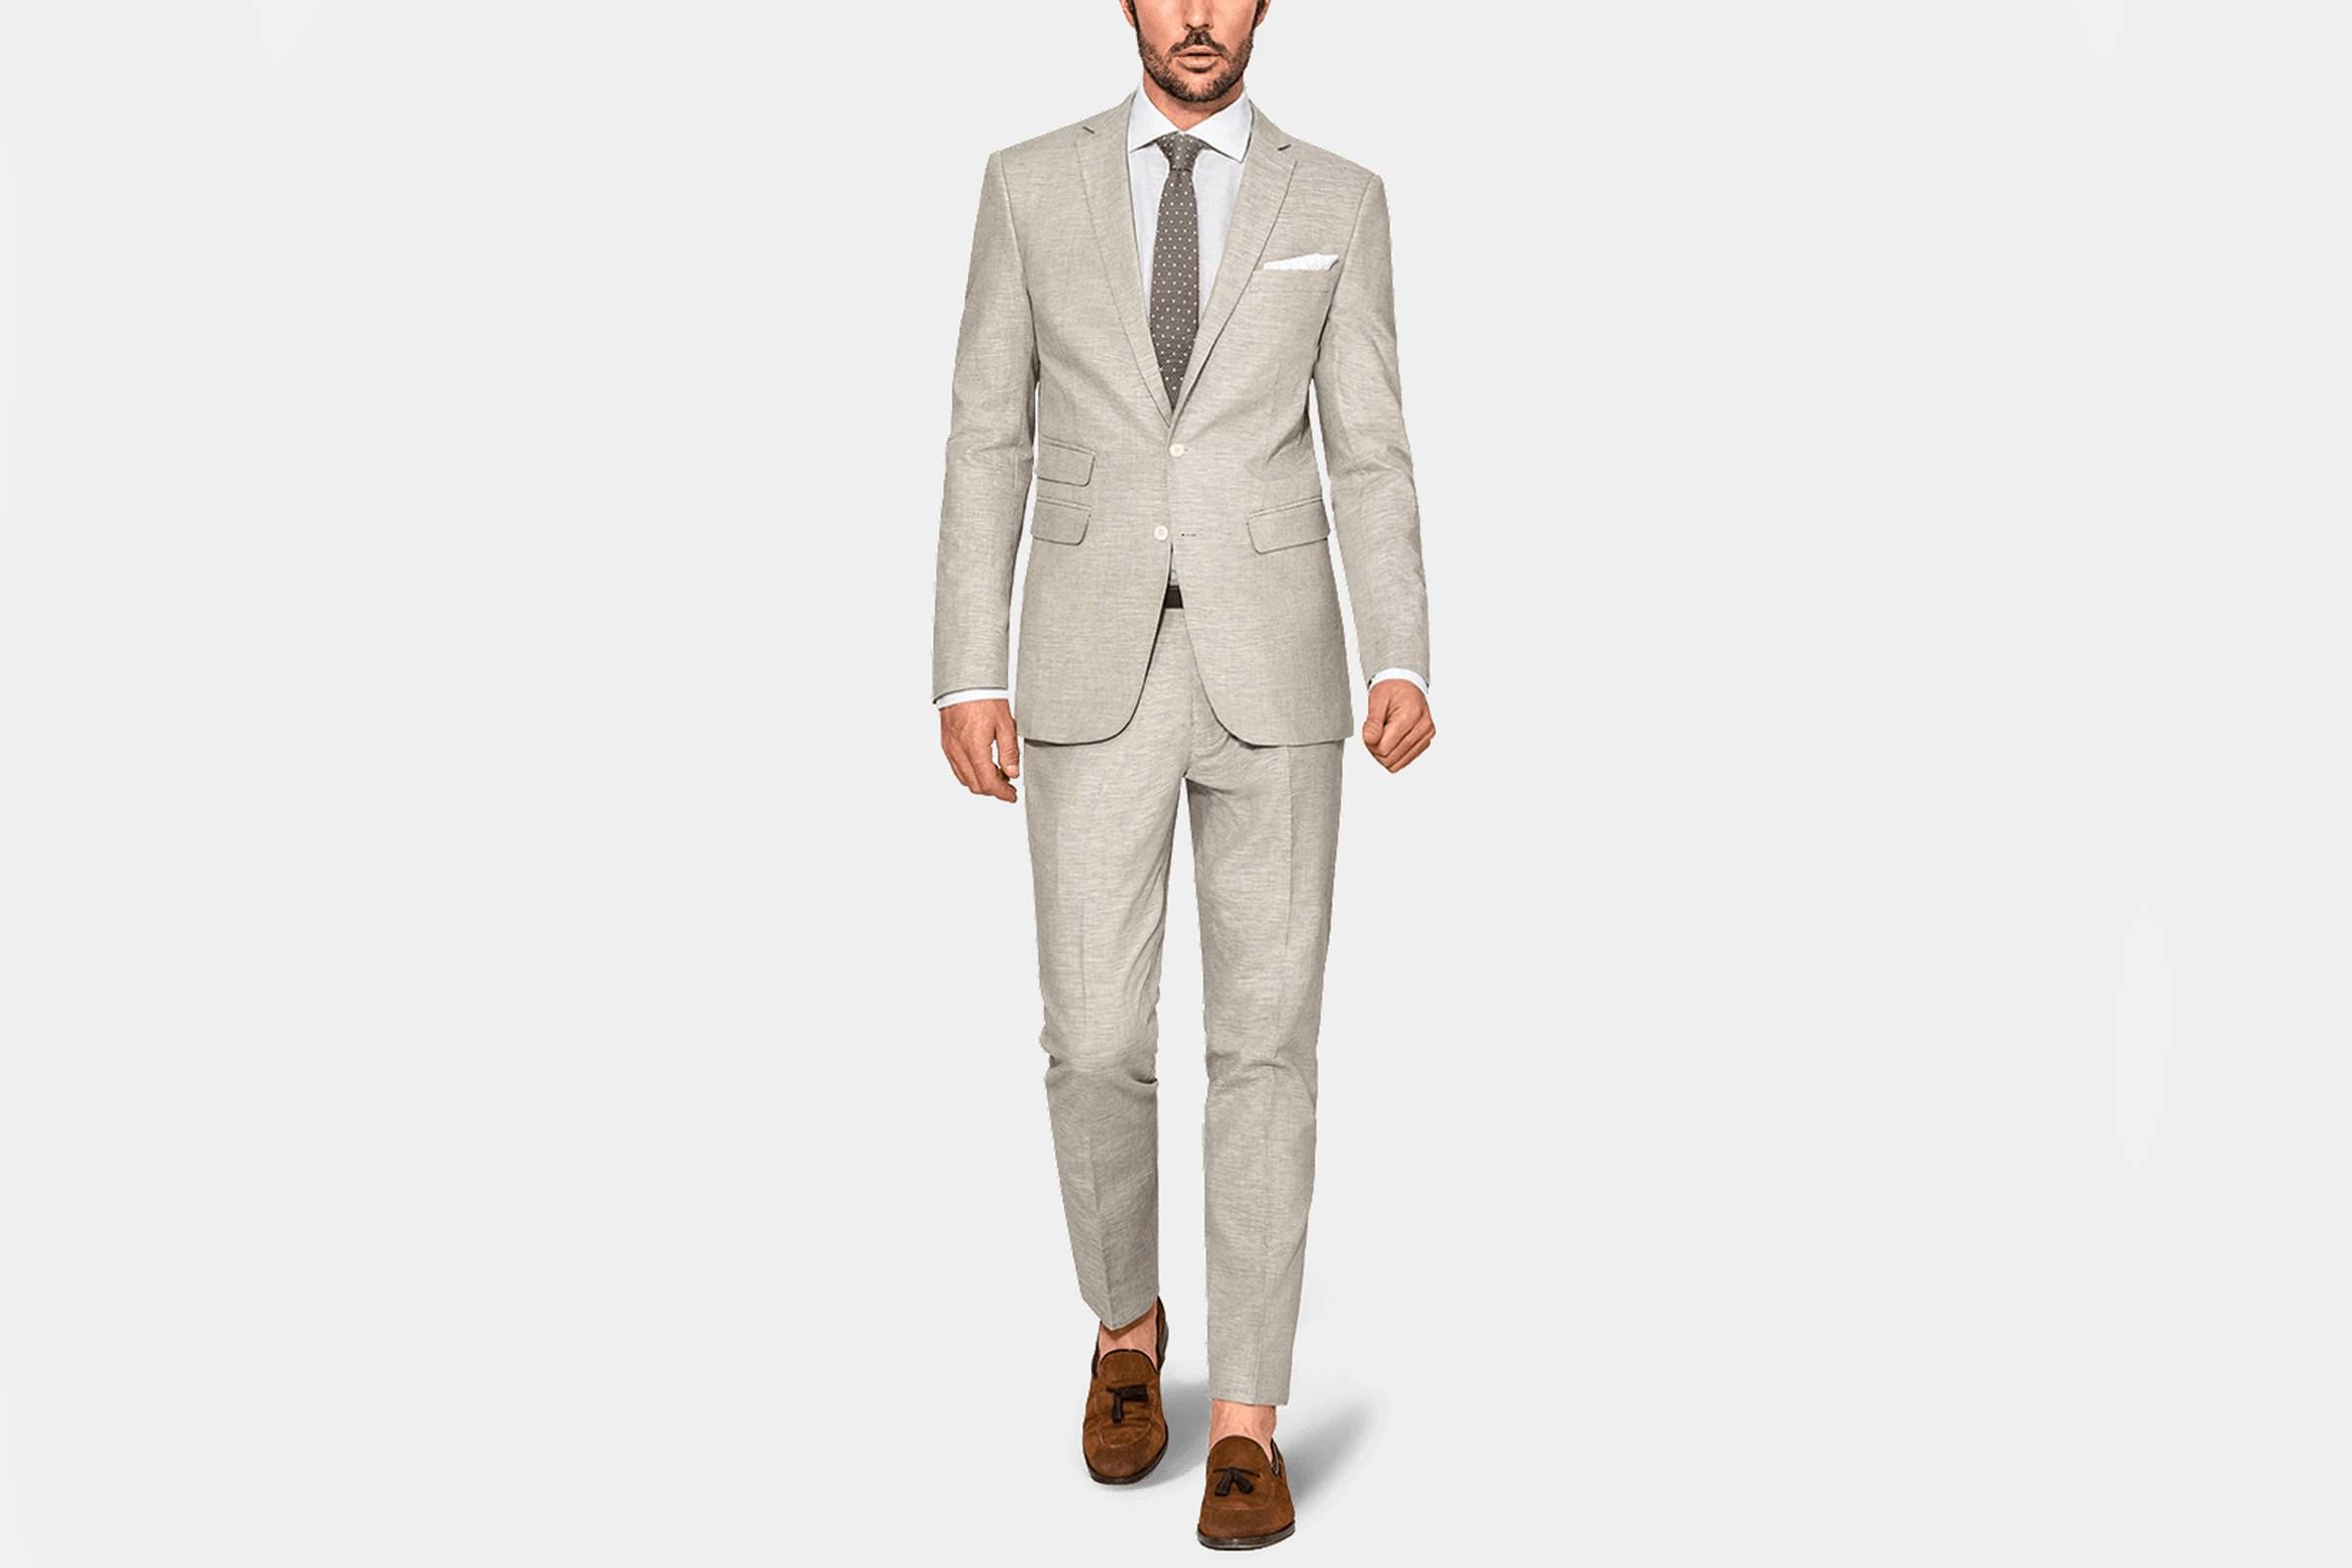 Types of Suits: Summer Suit, Linen or Linen/Silk/Cotton Blend